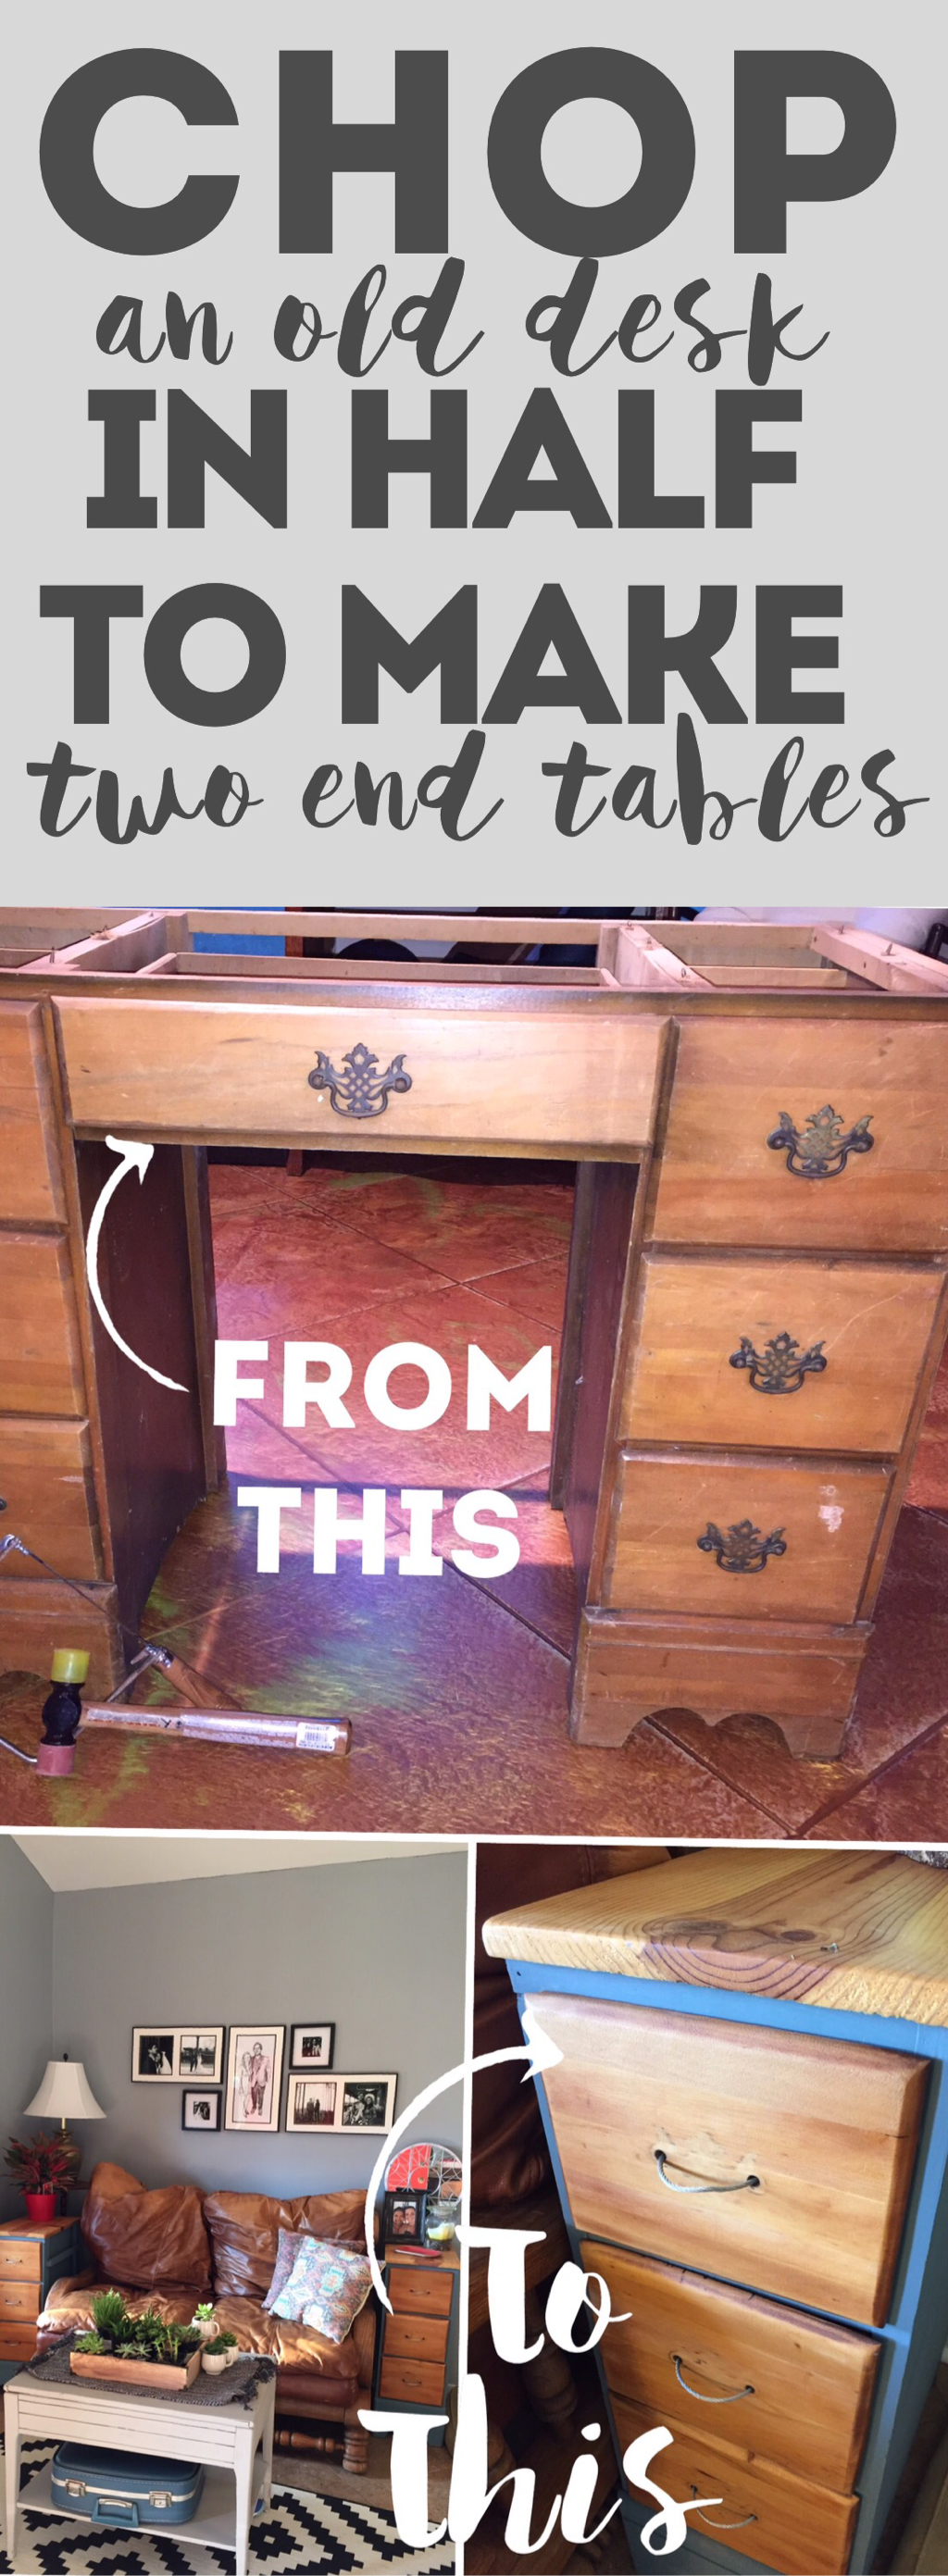 Step-by-step tutorial on how to cut up an old desk.